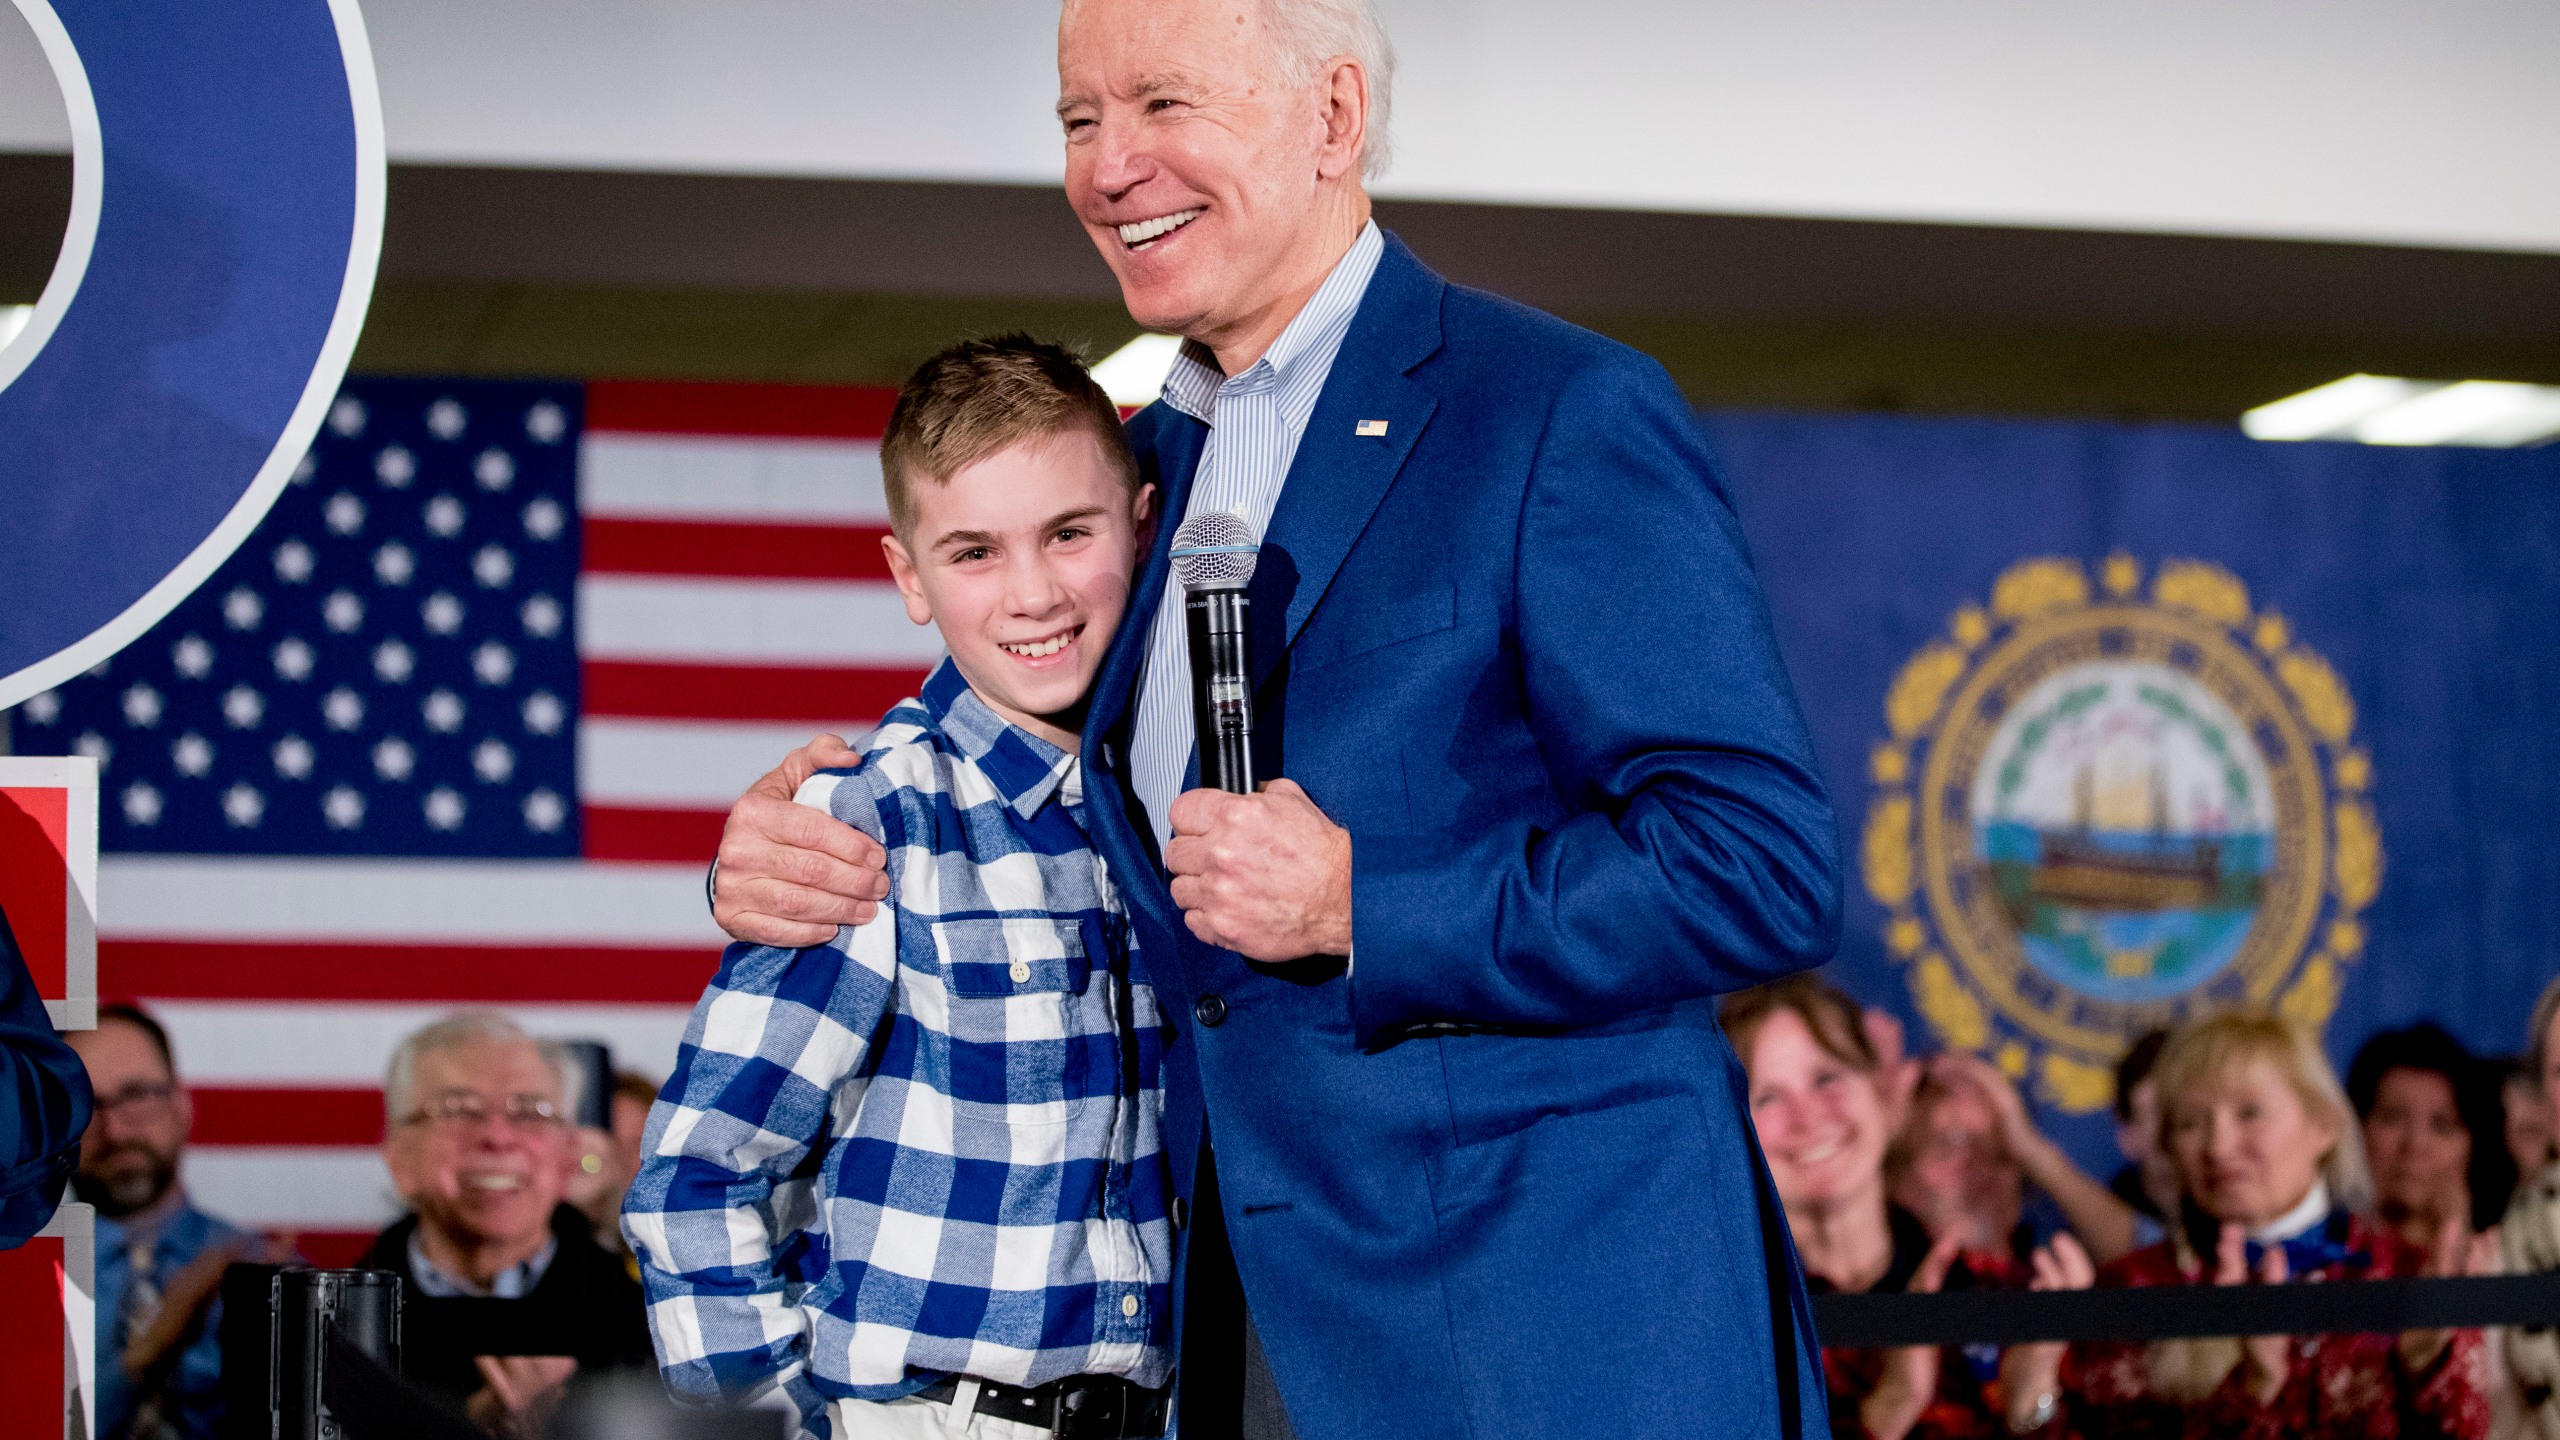 Joe Biden, Brayden Harrington